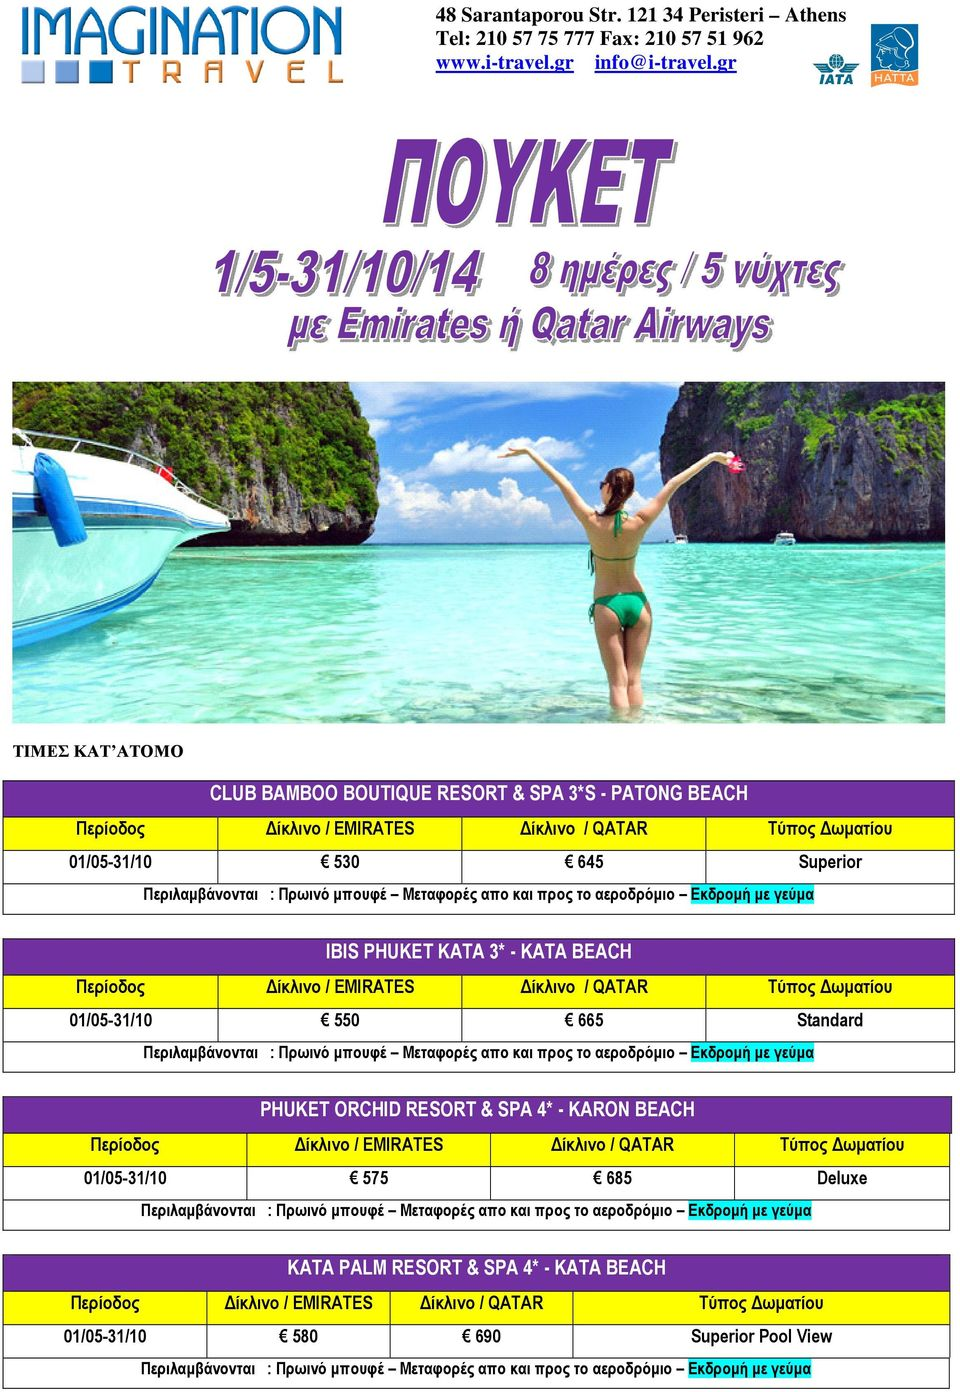 gr ΤΙΜΕΣ ΚΑΤ ΑΤΟΜΟ CLUB BAMBOO BOUTIQUE RESORT & SPA 3*S - PATONG BEACH 01/05-31/10 530 645 Superior IBIS